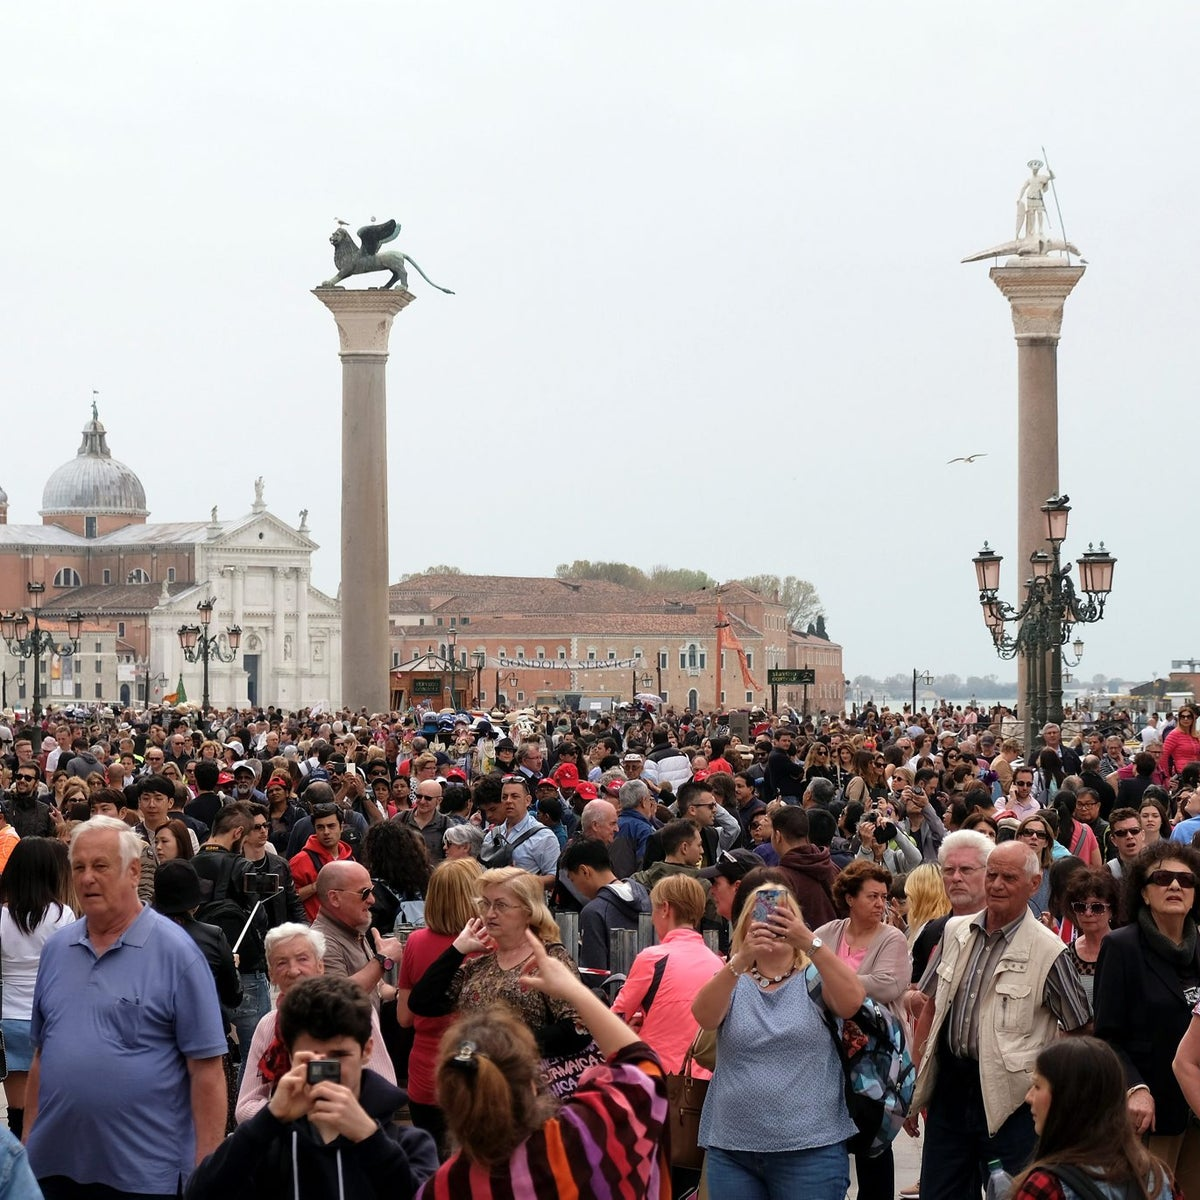 Tourists are seen at St. Mark's square in Venice, Italy, April 15, 2108.